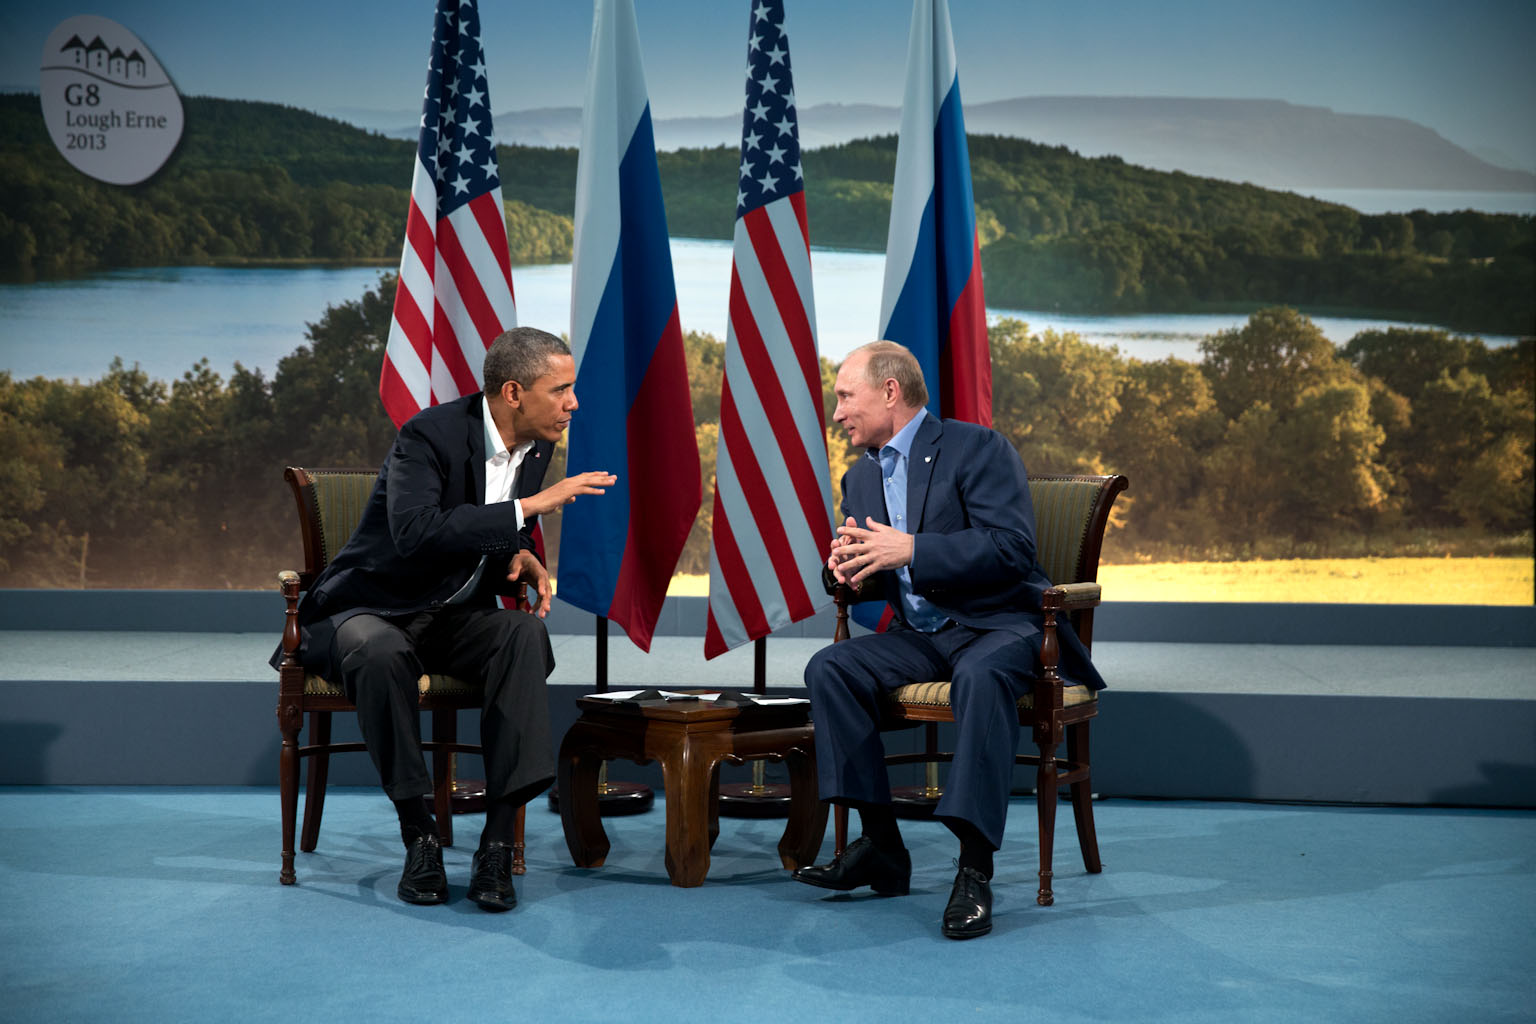 President Barack Obama meets with Russian President Vladmir Putin during a bilateral at the G8 Summit in Lough Erne